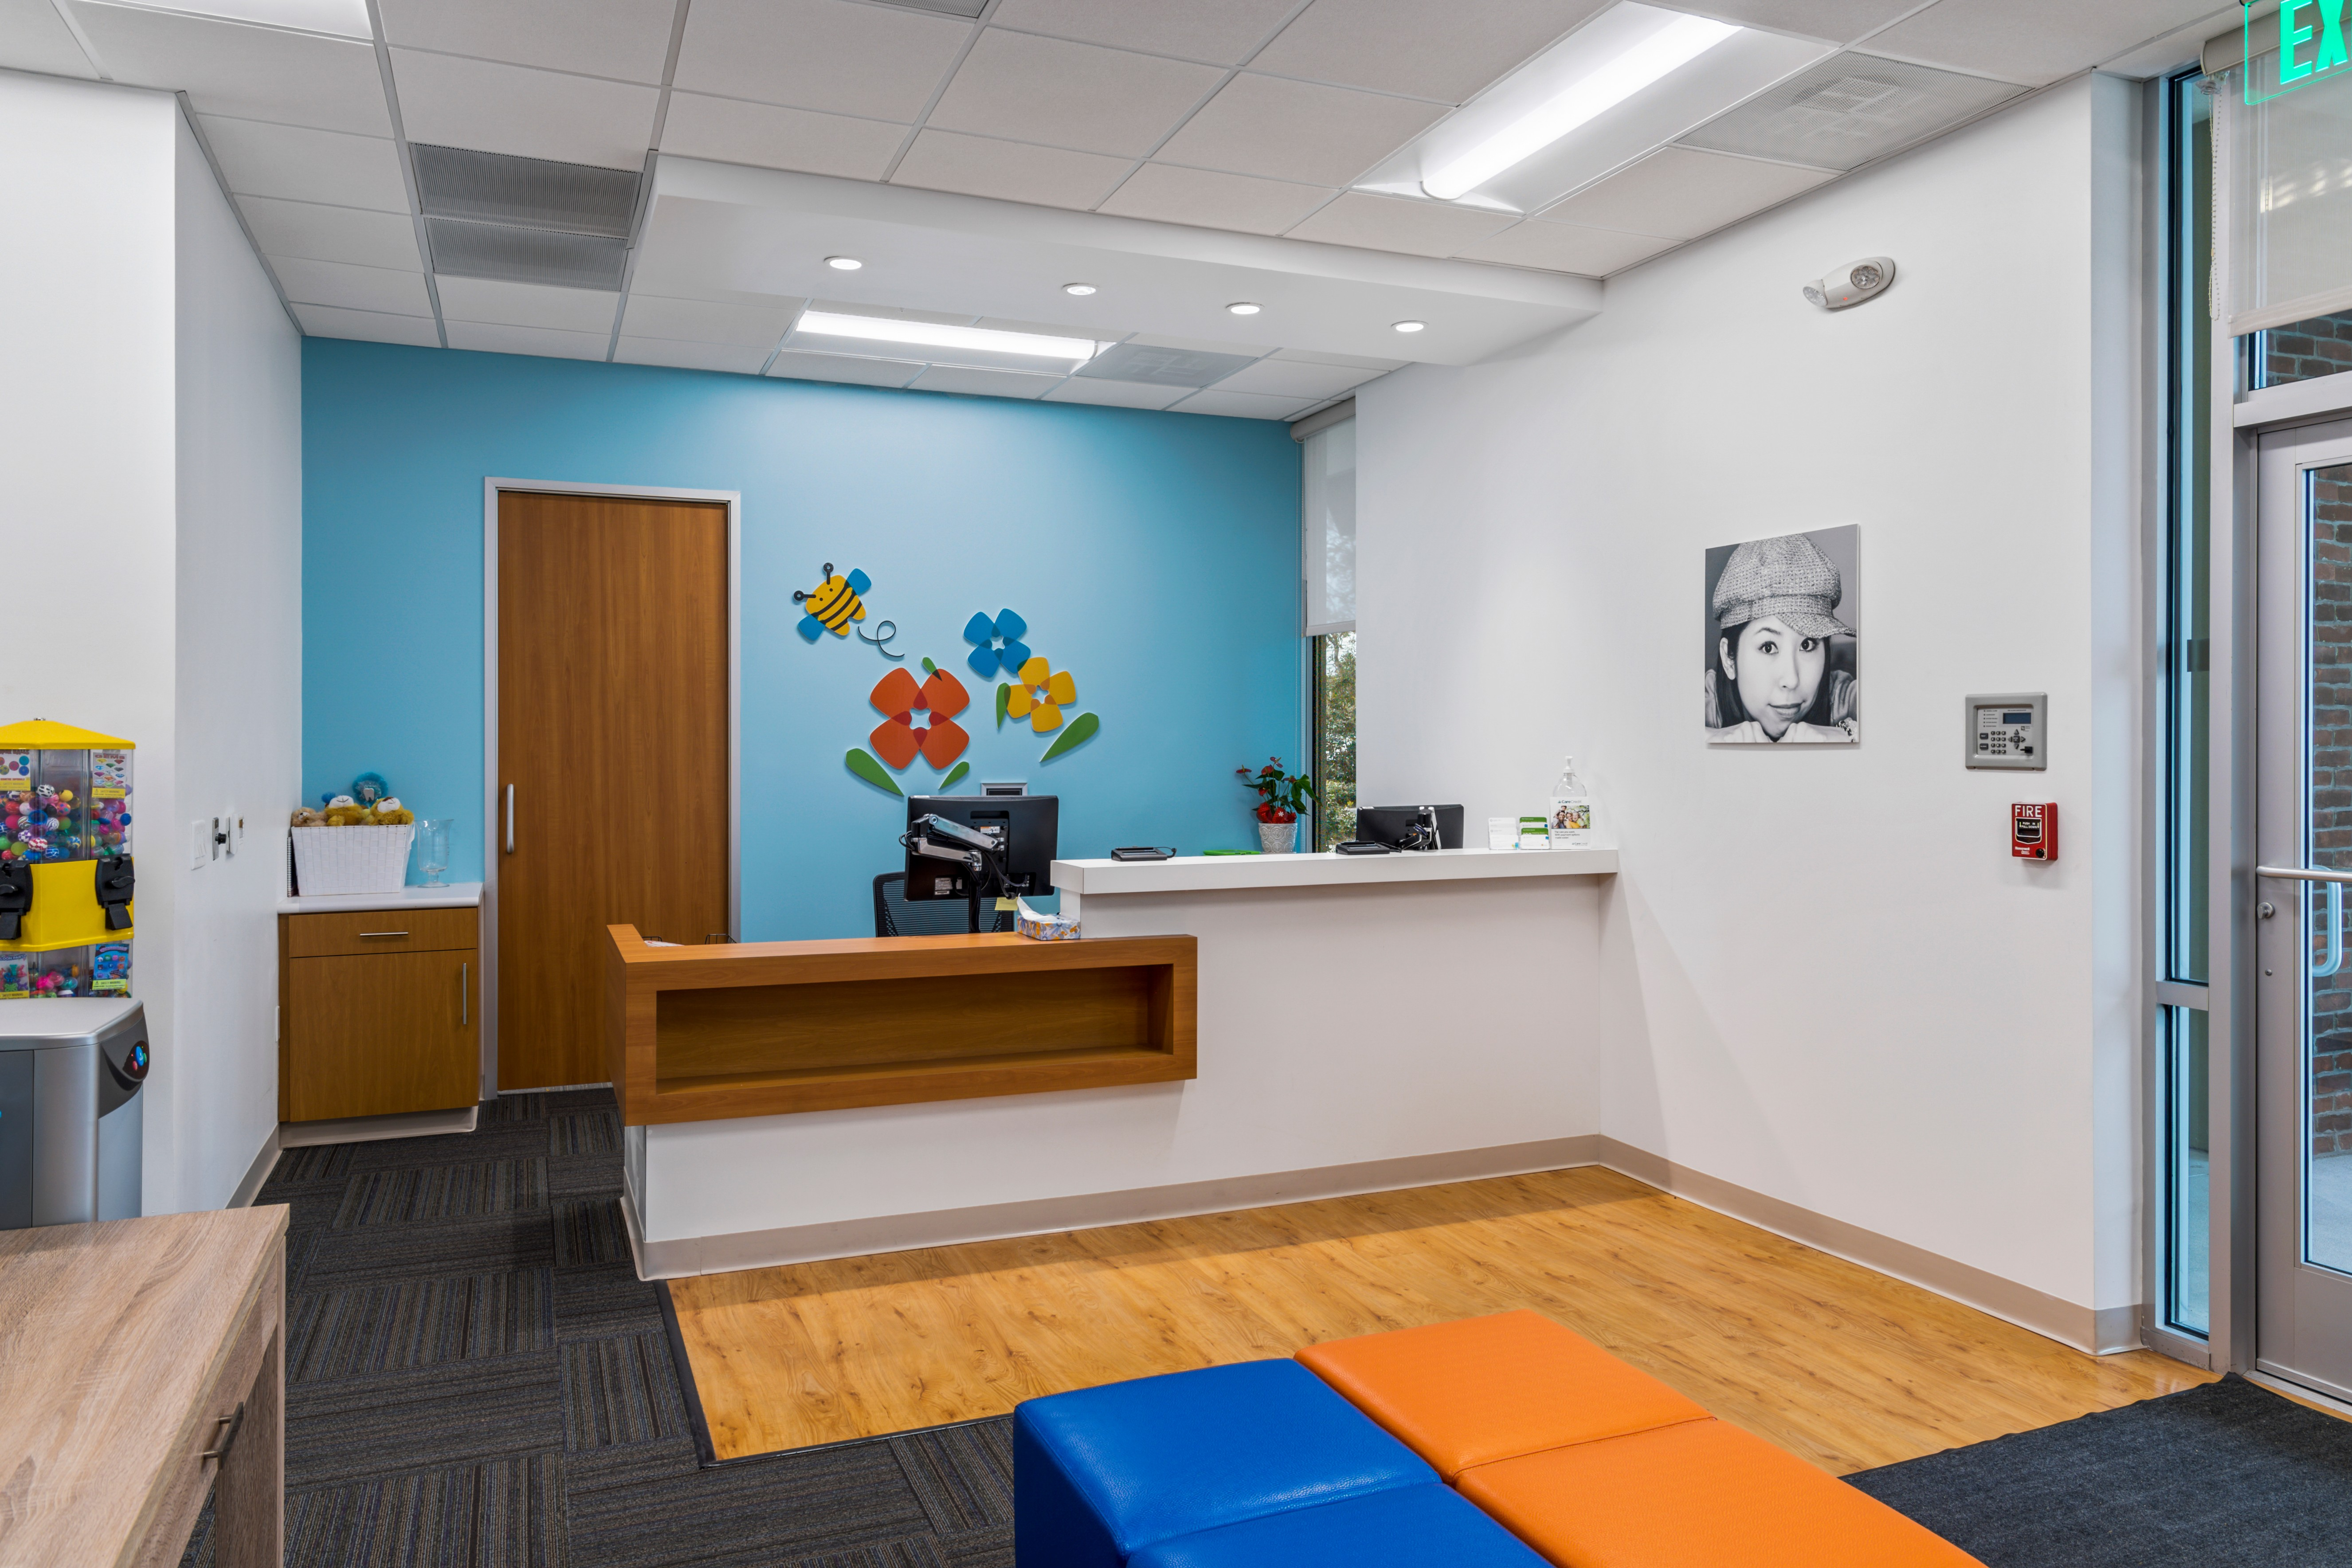 Nona Kids' Dentists opened its doors to the Lake Nona community in November 2018!